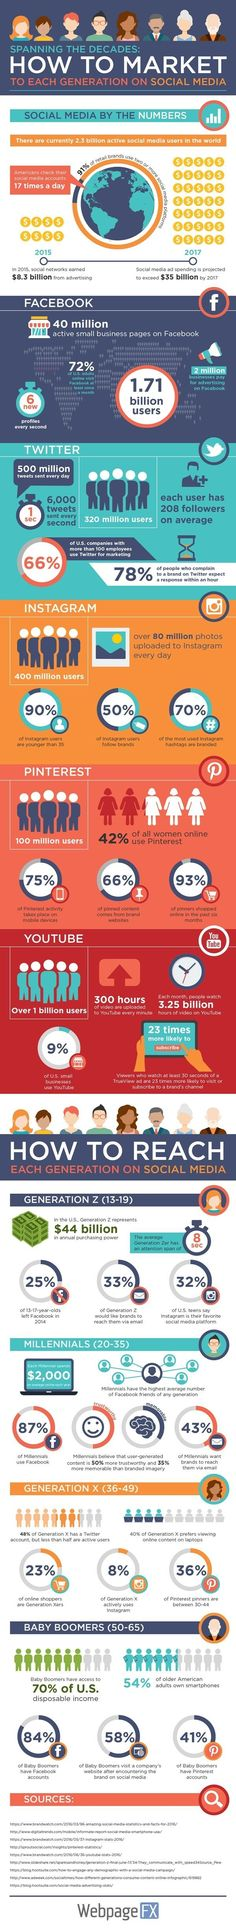 Spanning the Decades: How to Market to Each Generation on Social Media [Infographic]